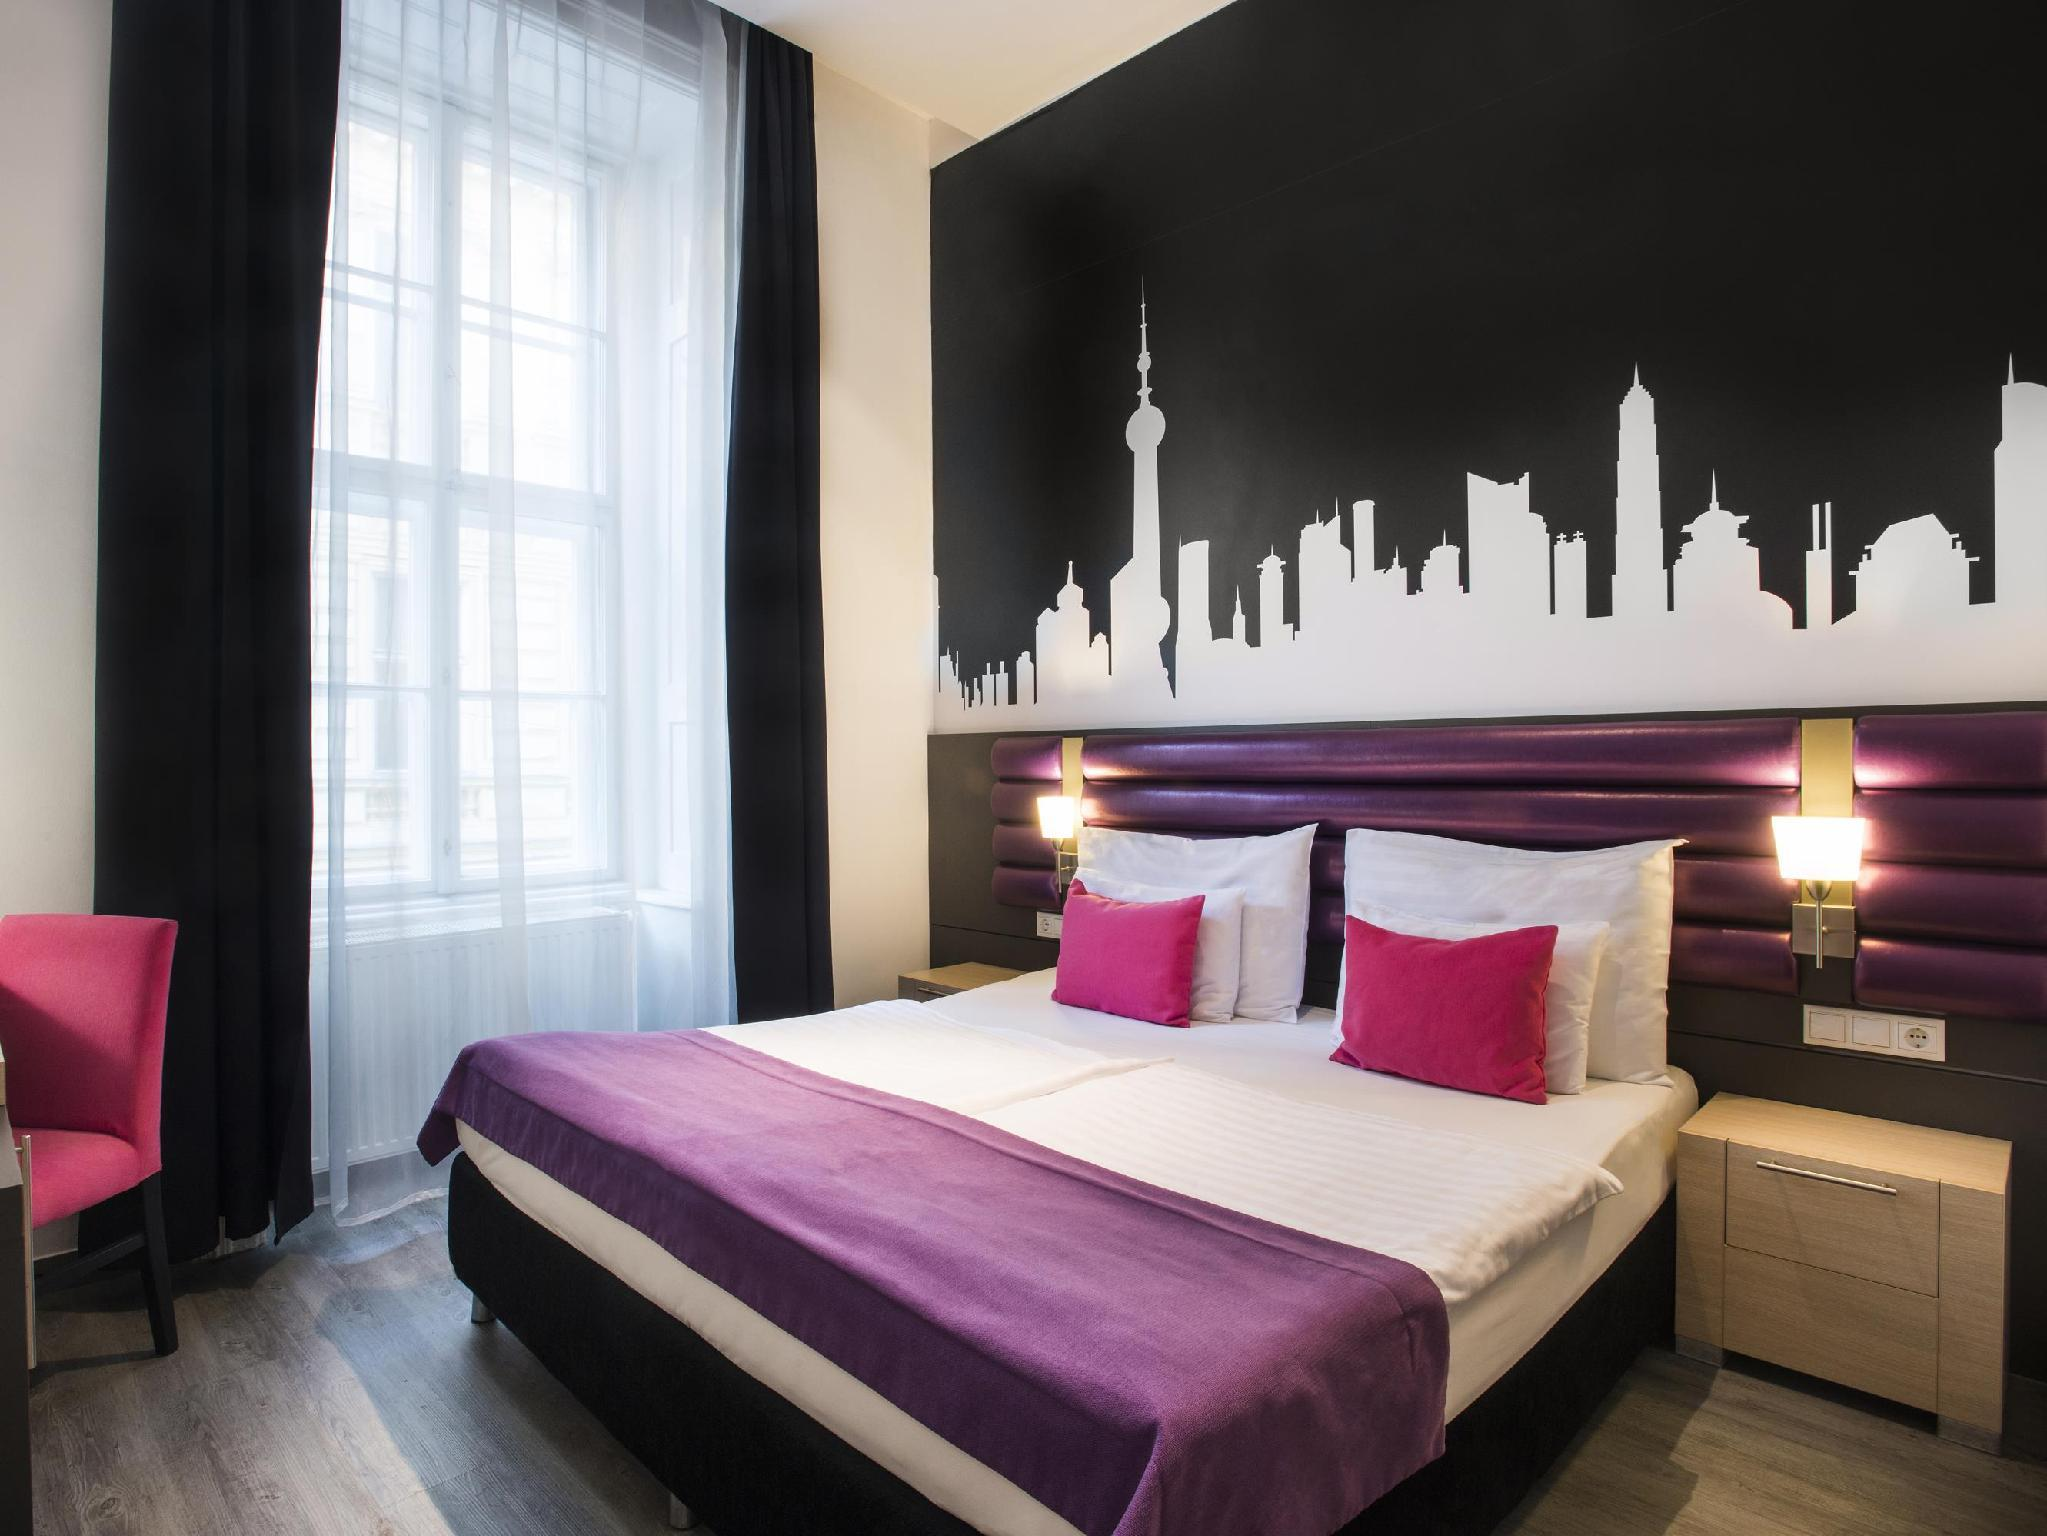 Andrassy Thai Hotel Hungary Hotels Online Hotel Reservations For Hotels In Hungary